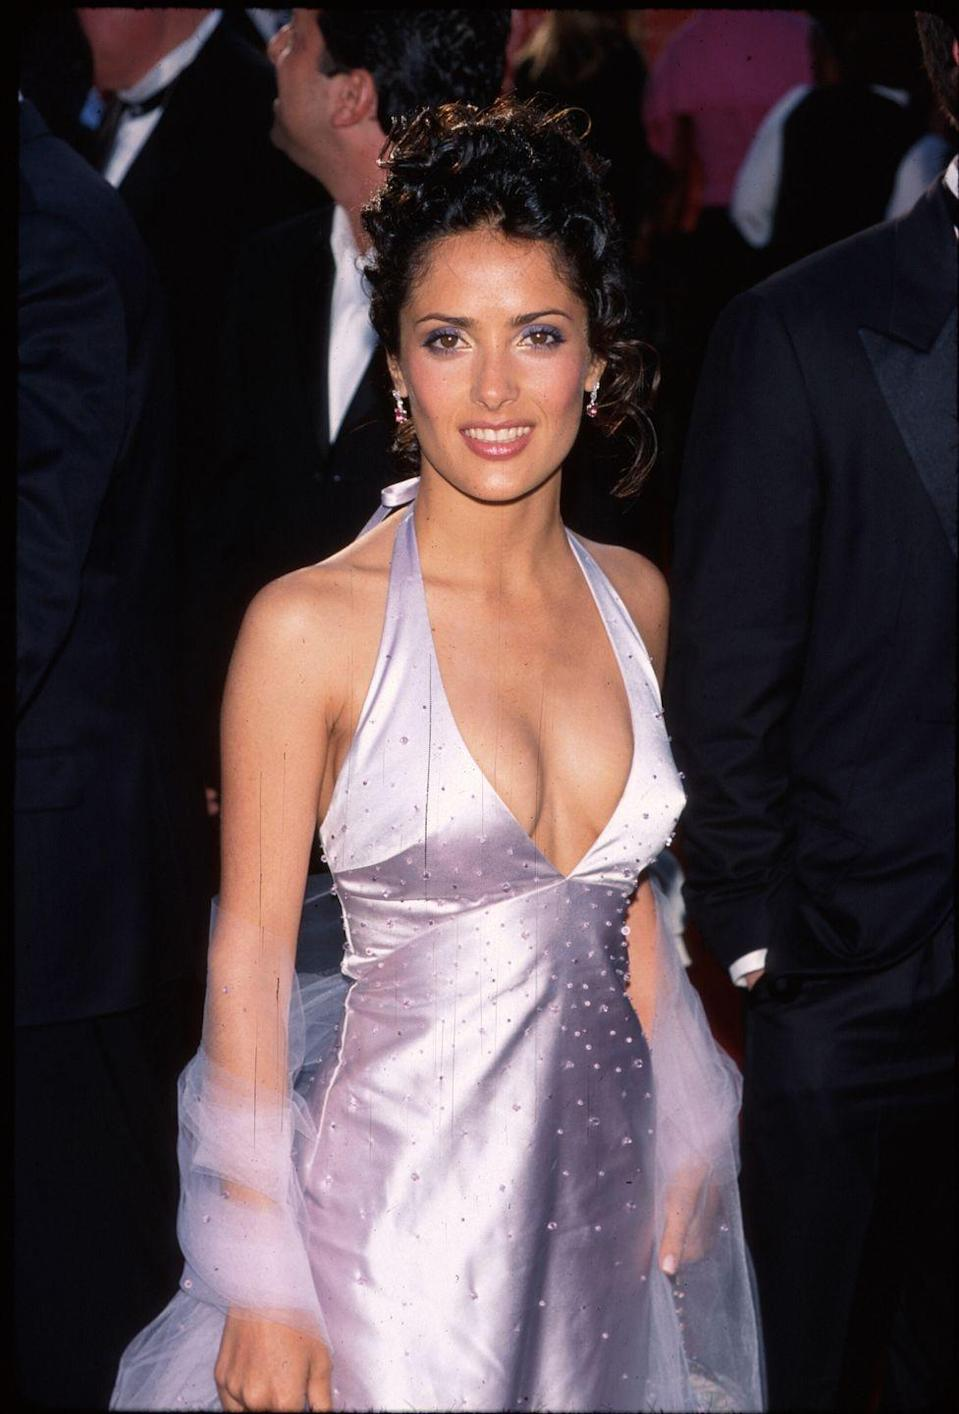 <p>Salma brought early-aughts glam to the ceremony in a plunging lilac halter dress and matching shawl. She presented the Academy Award for Technical Achievement later that night.</p>